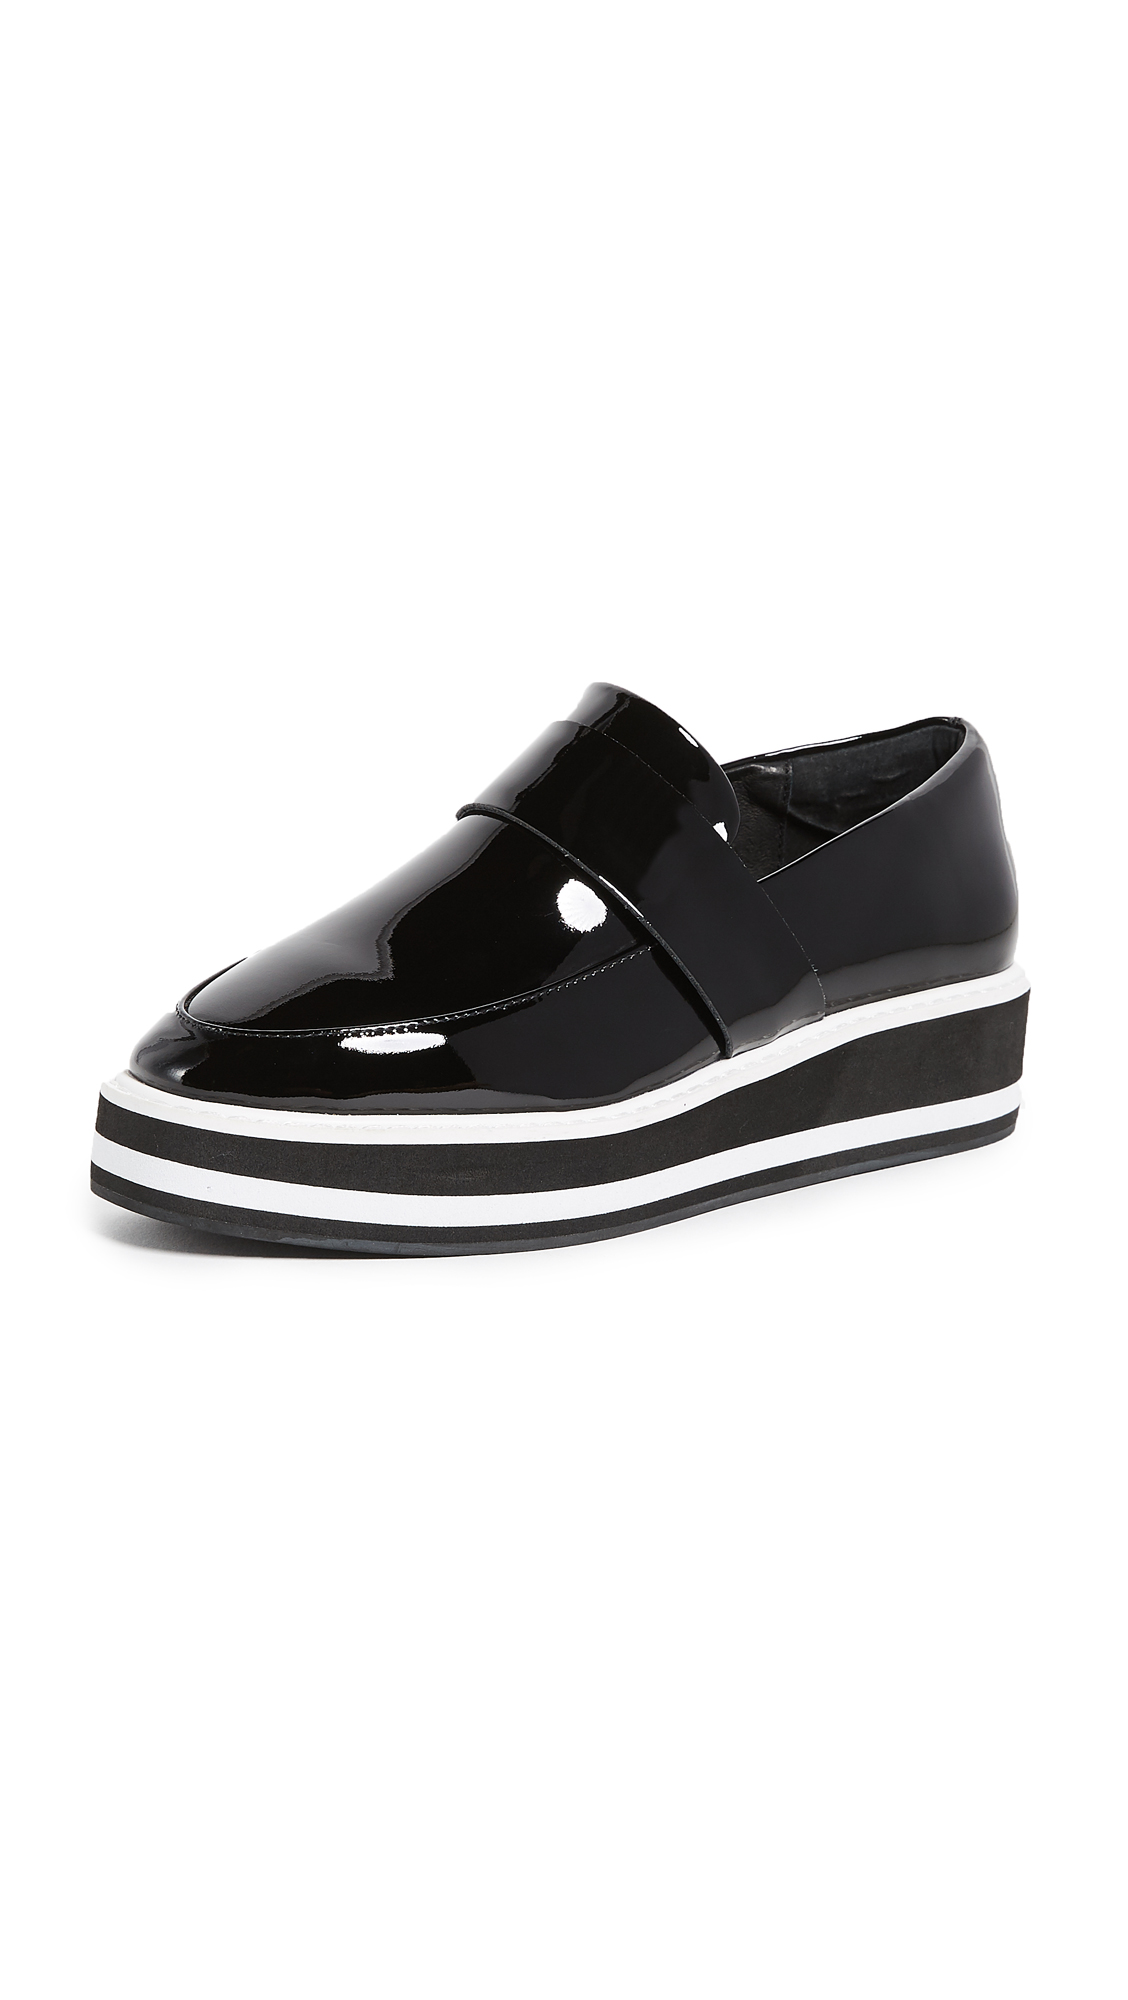 Sol Sana Venus Flatforms - Black Stripe